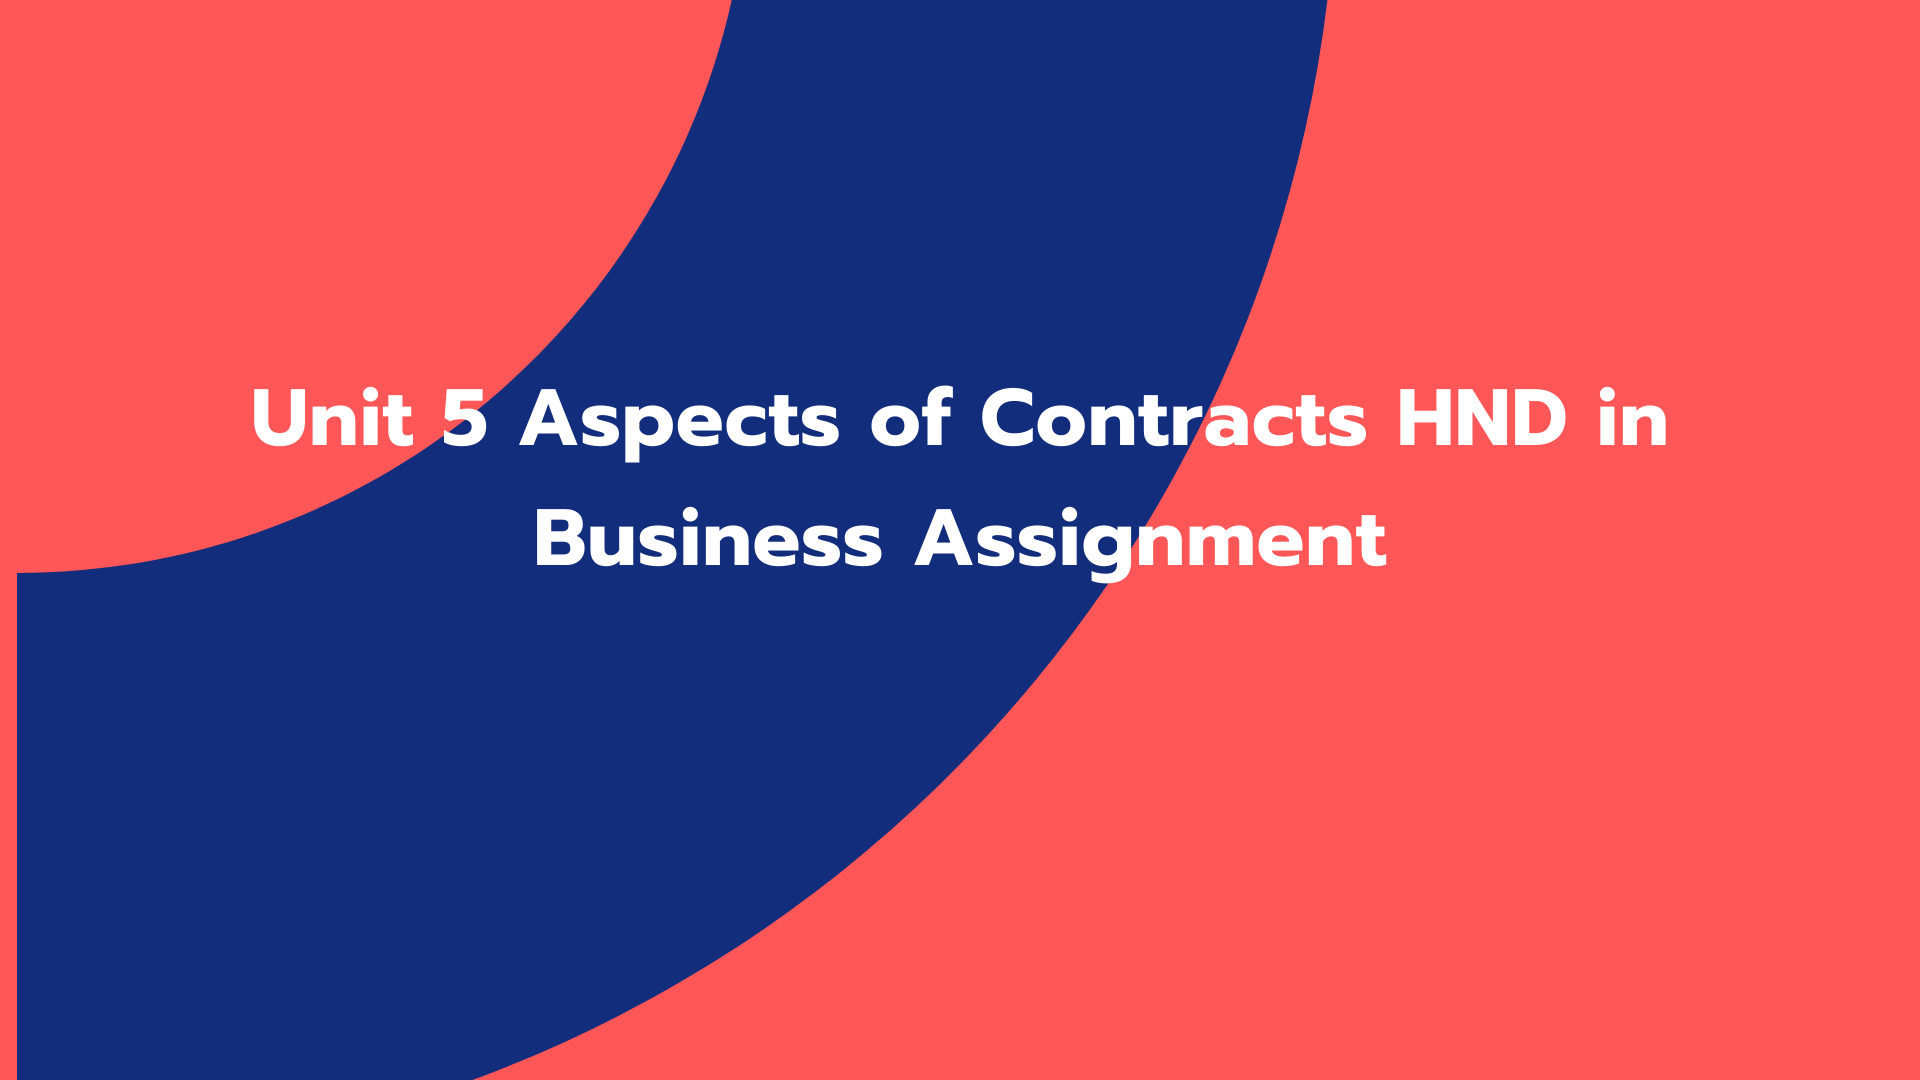 Unit 5 Aspects of Contracts HND in Business Assignment